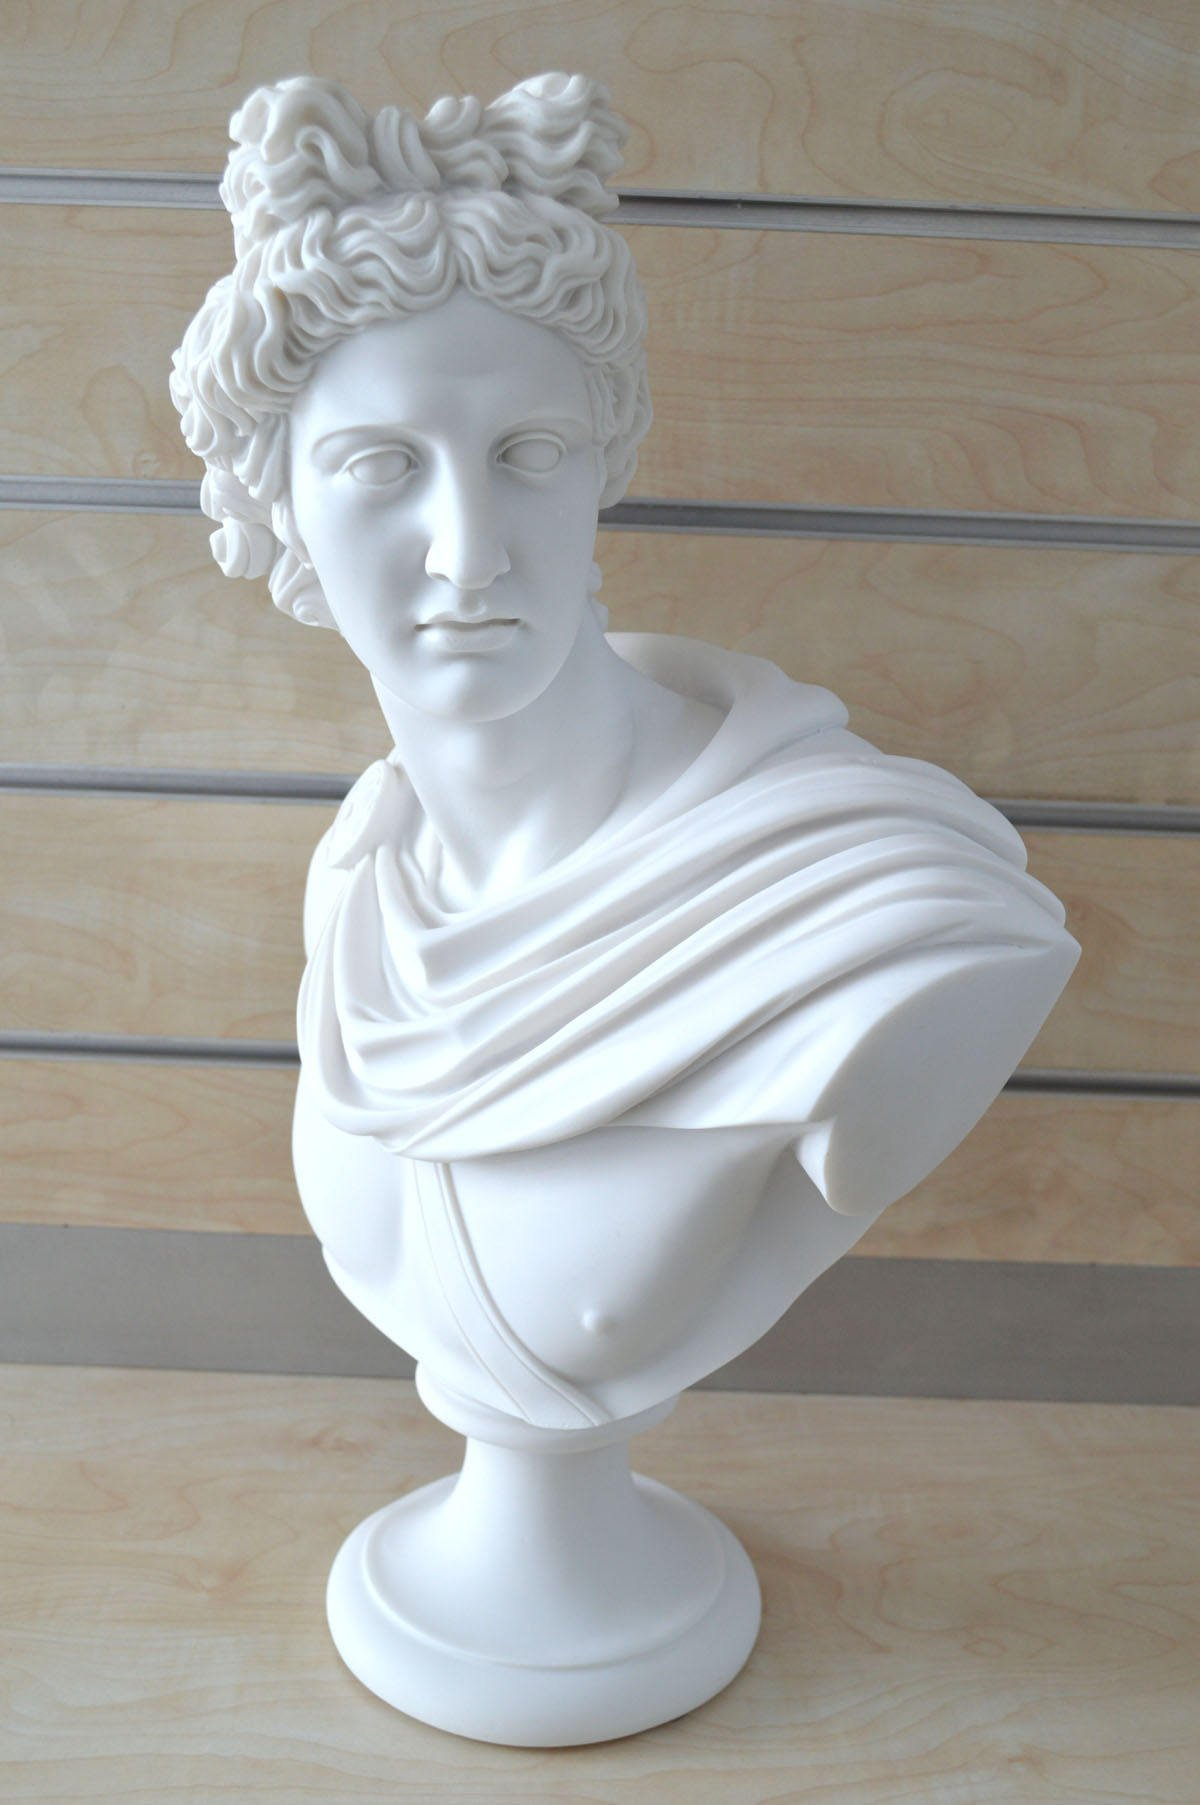 God Apollo Bust Sculpture Ancient Greek God of Sun and Poetry Grand Statue by Estia Creations (Image #2)